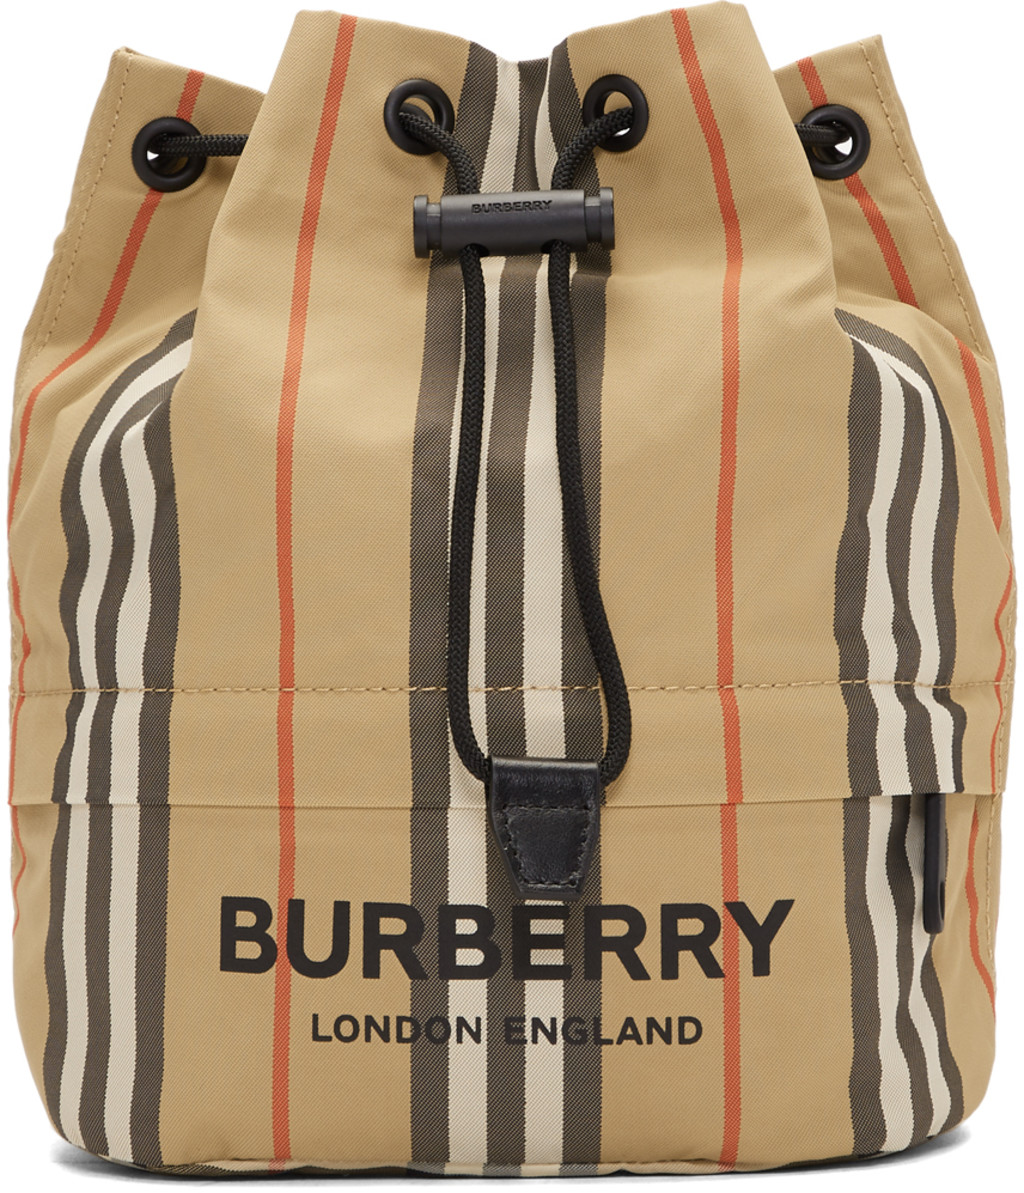 71d216b0f Burberry for Women FW19 Collection | SSENSE Canada